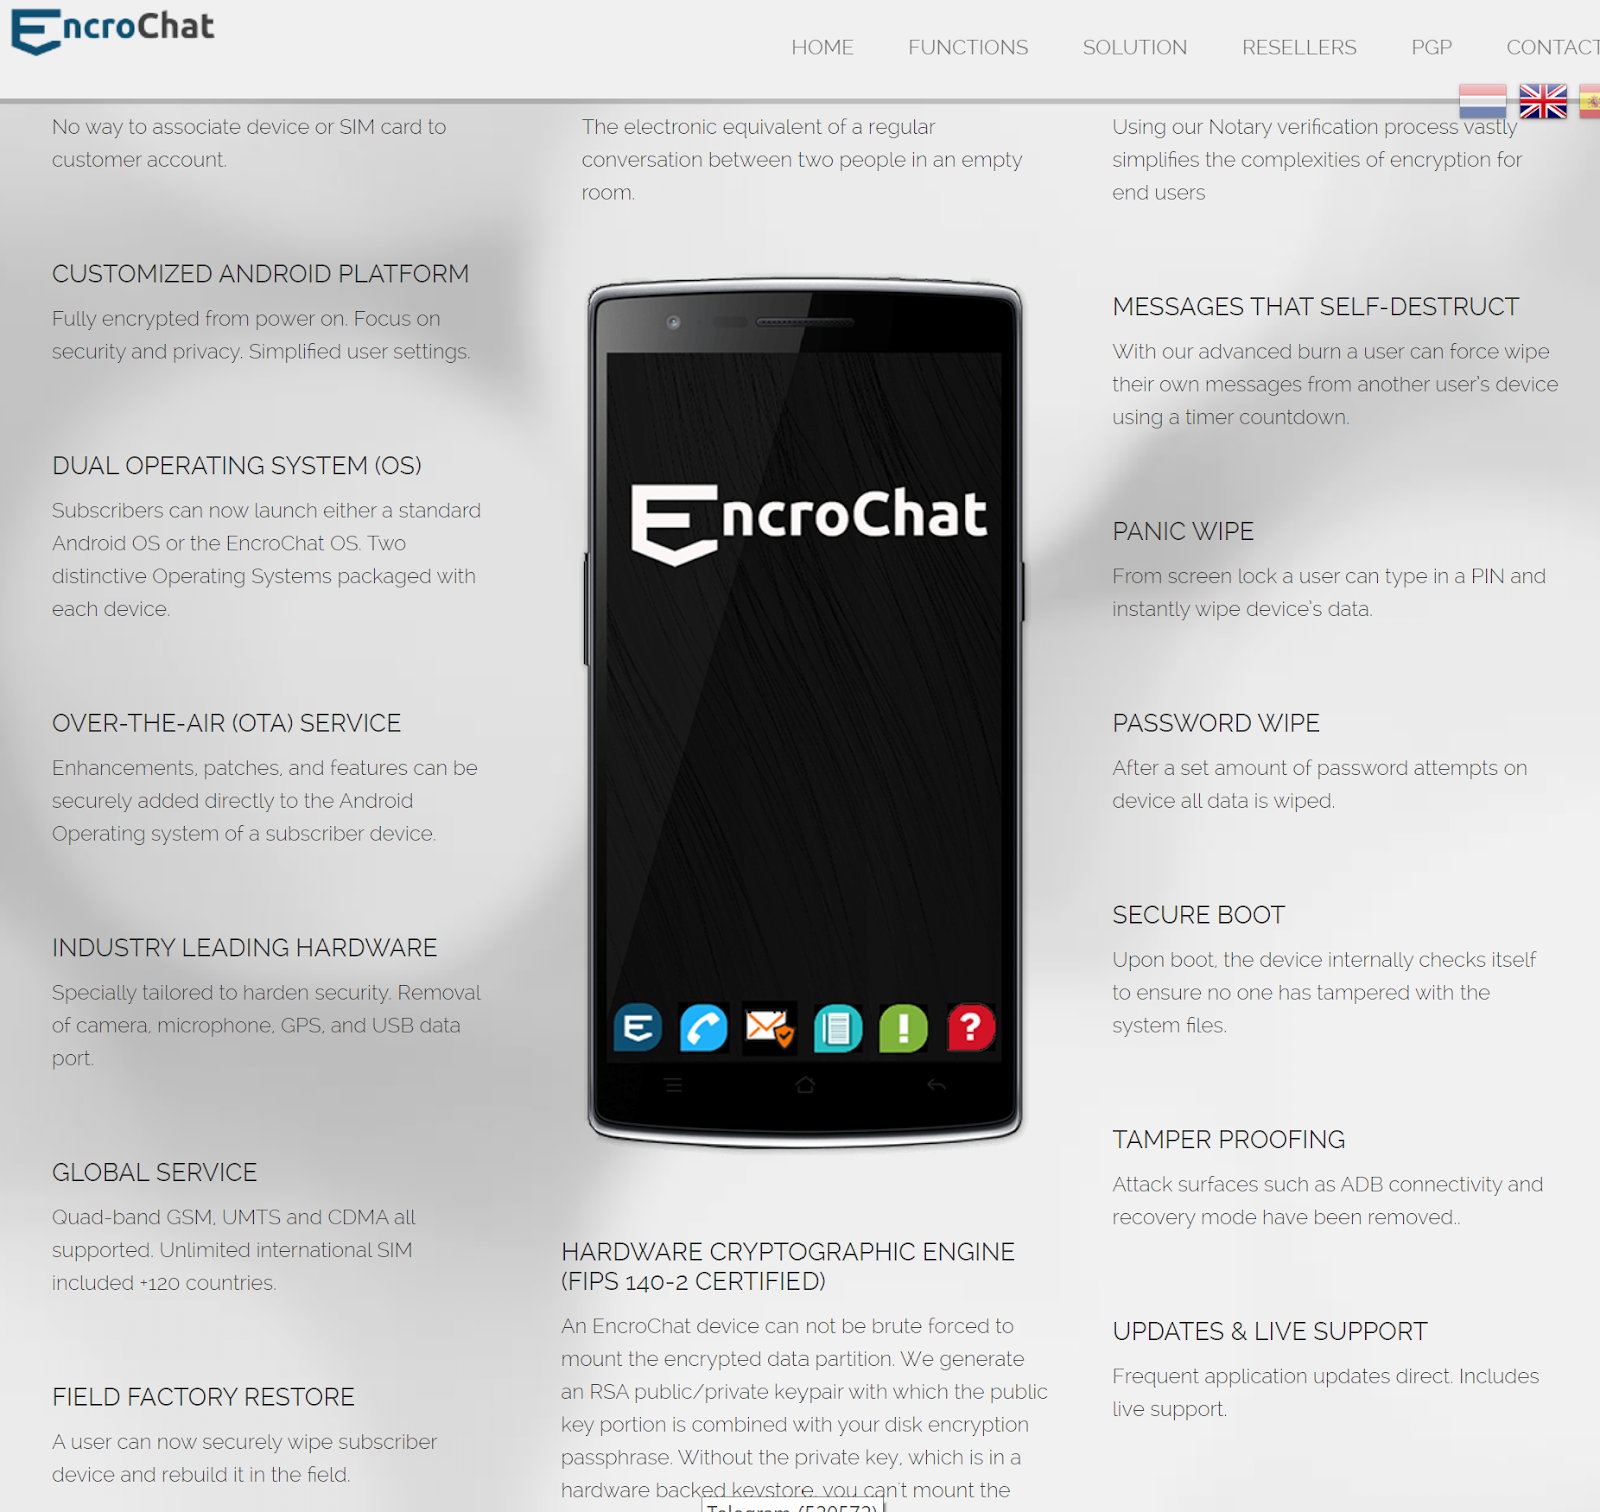 EnchroChat Main Page (the site is currently offline)